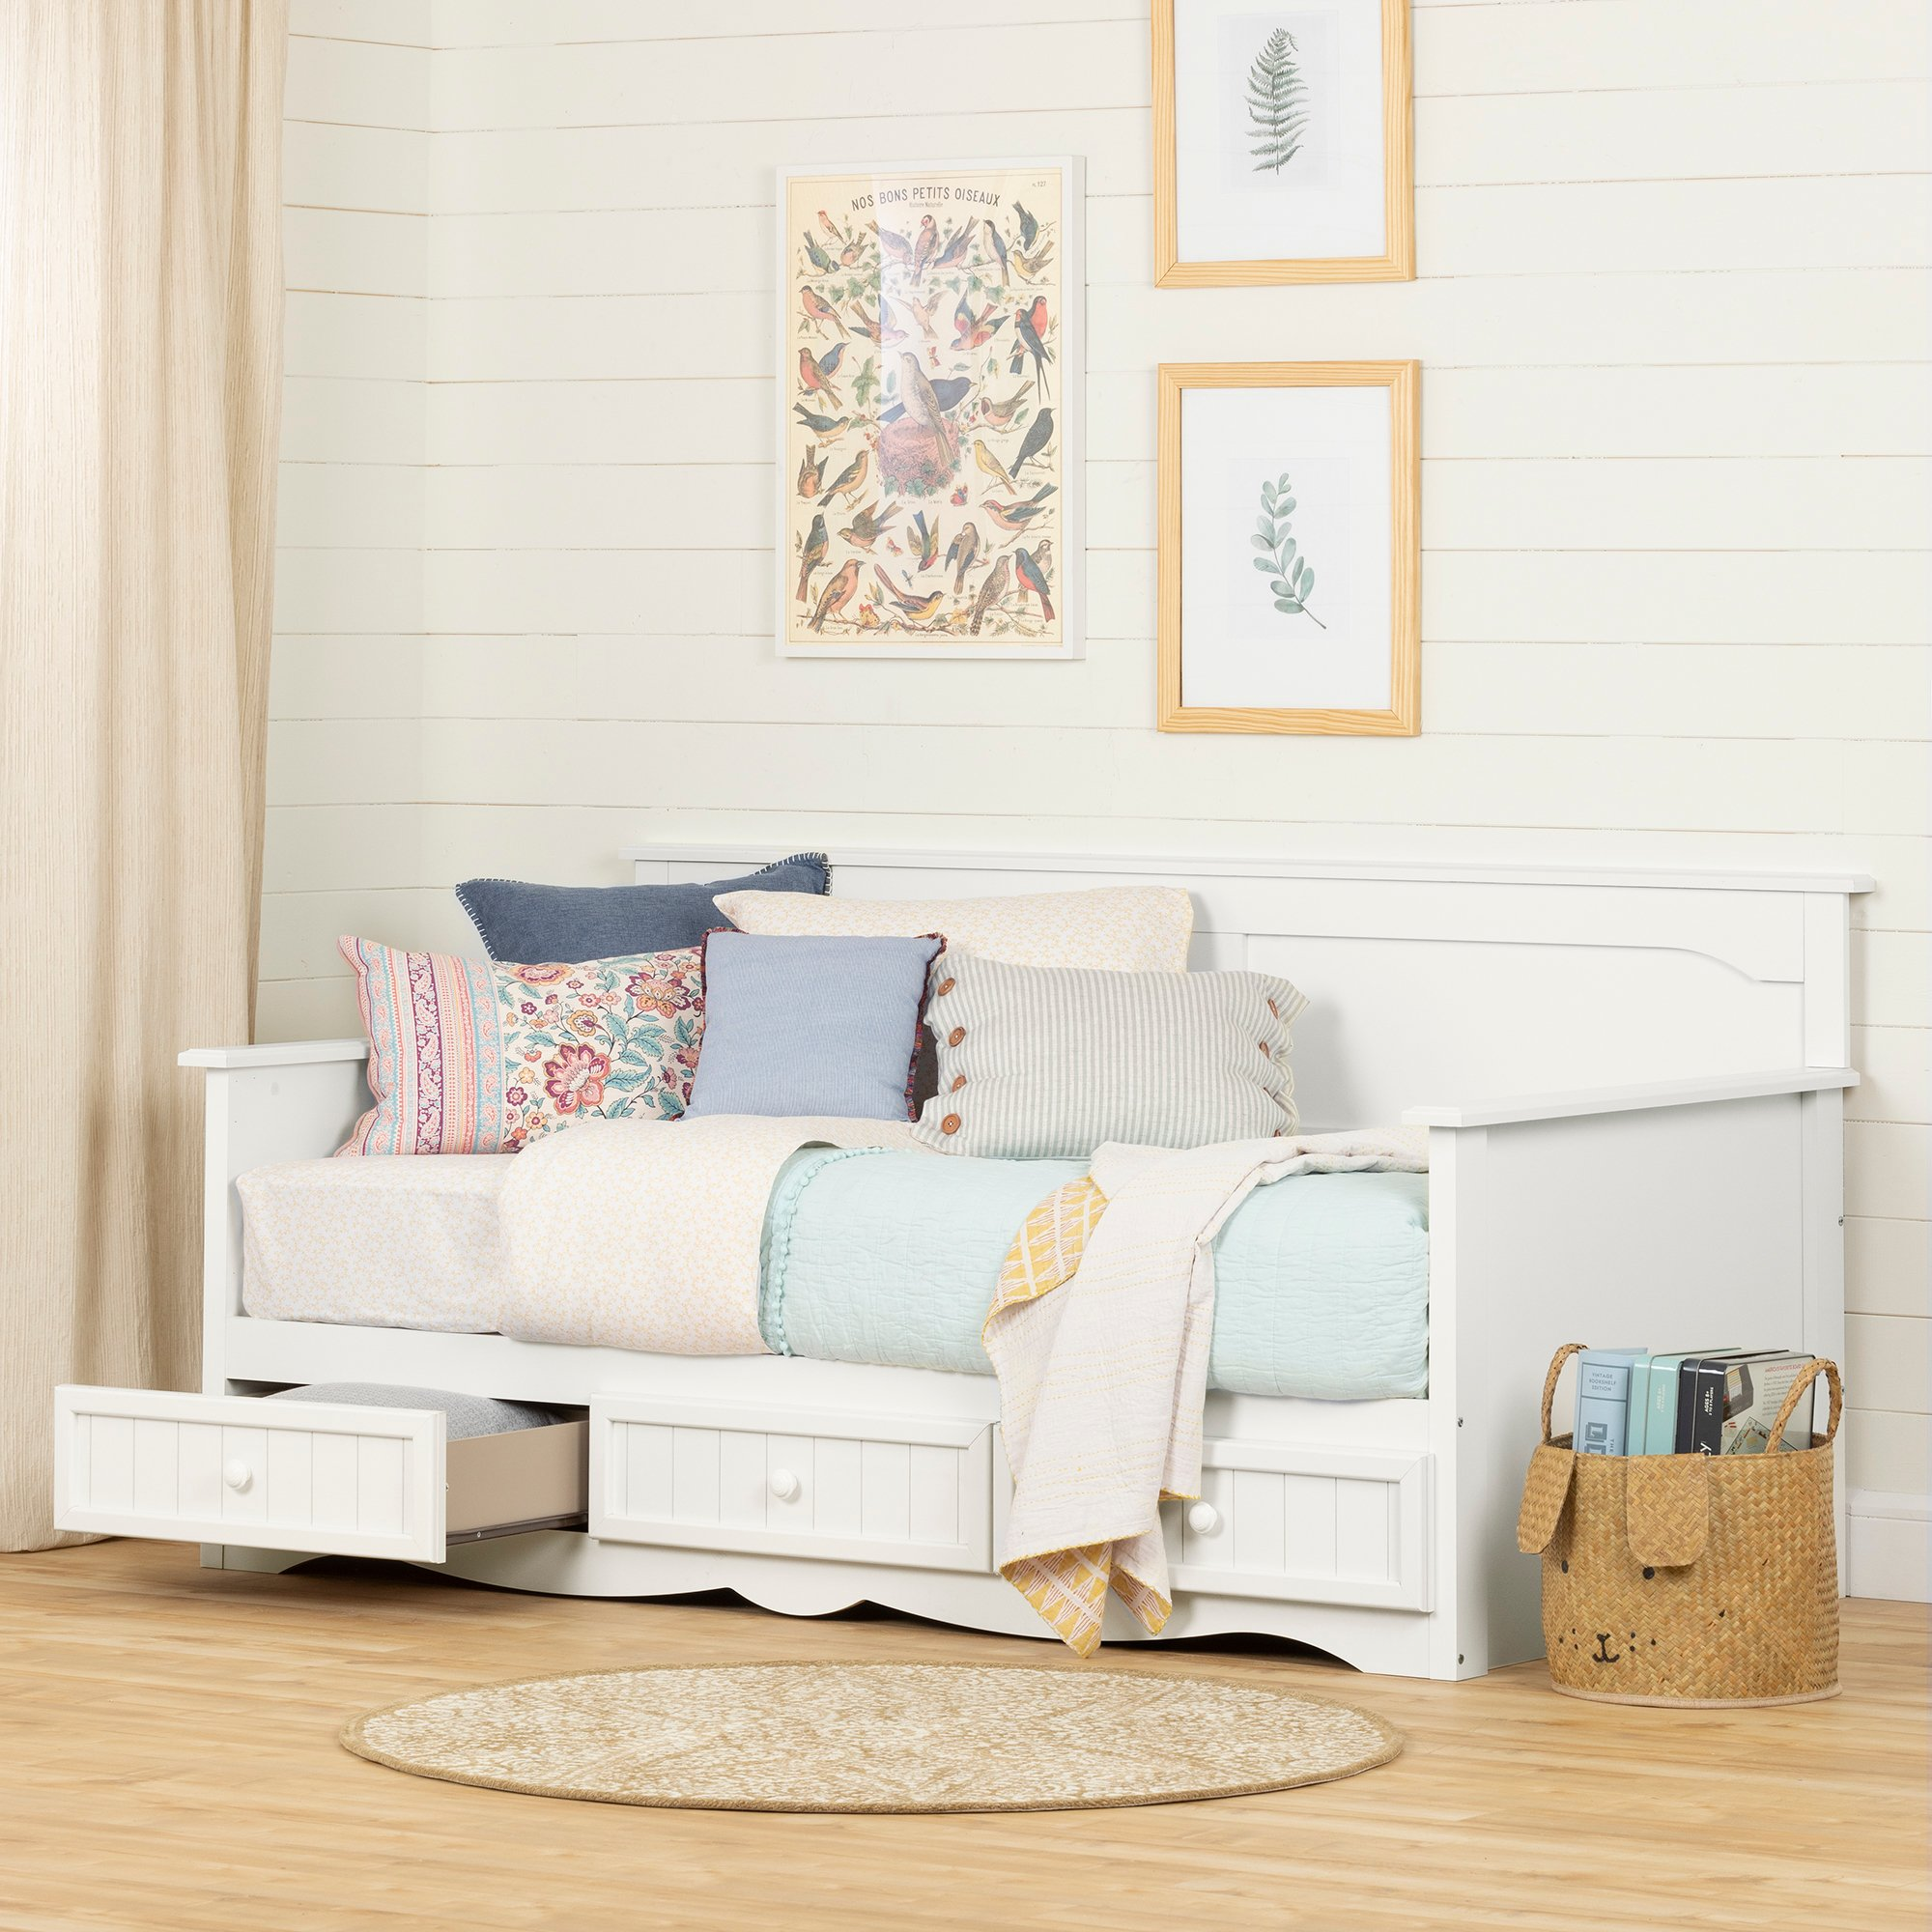 South Shore 11685 Savannah Daybed with Storage, Twin, Pure White